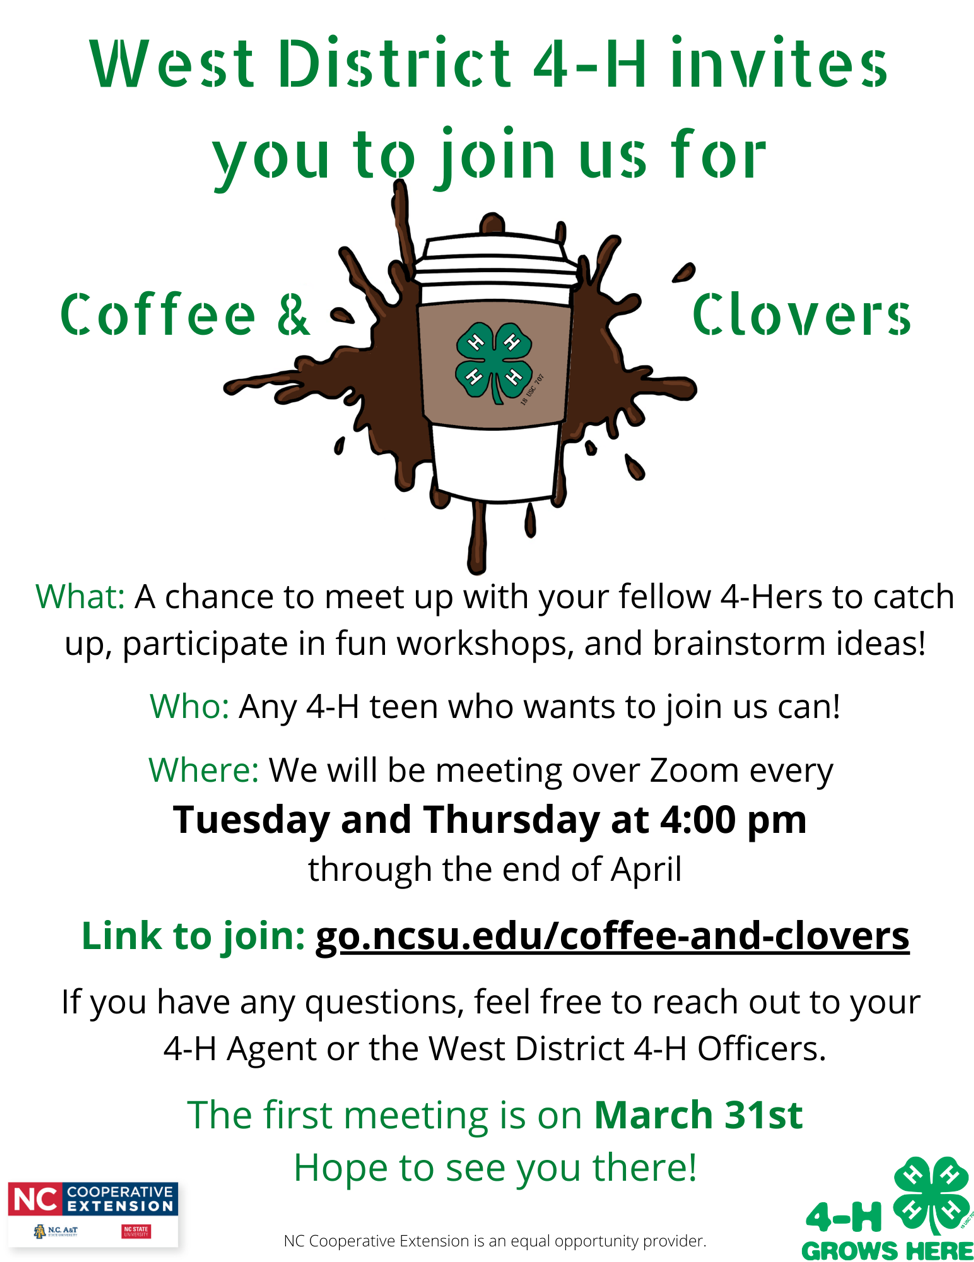 Coffee and Clovers flyer image